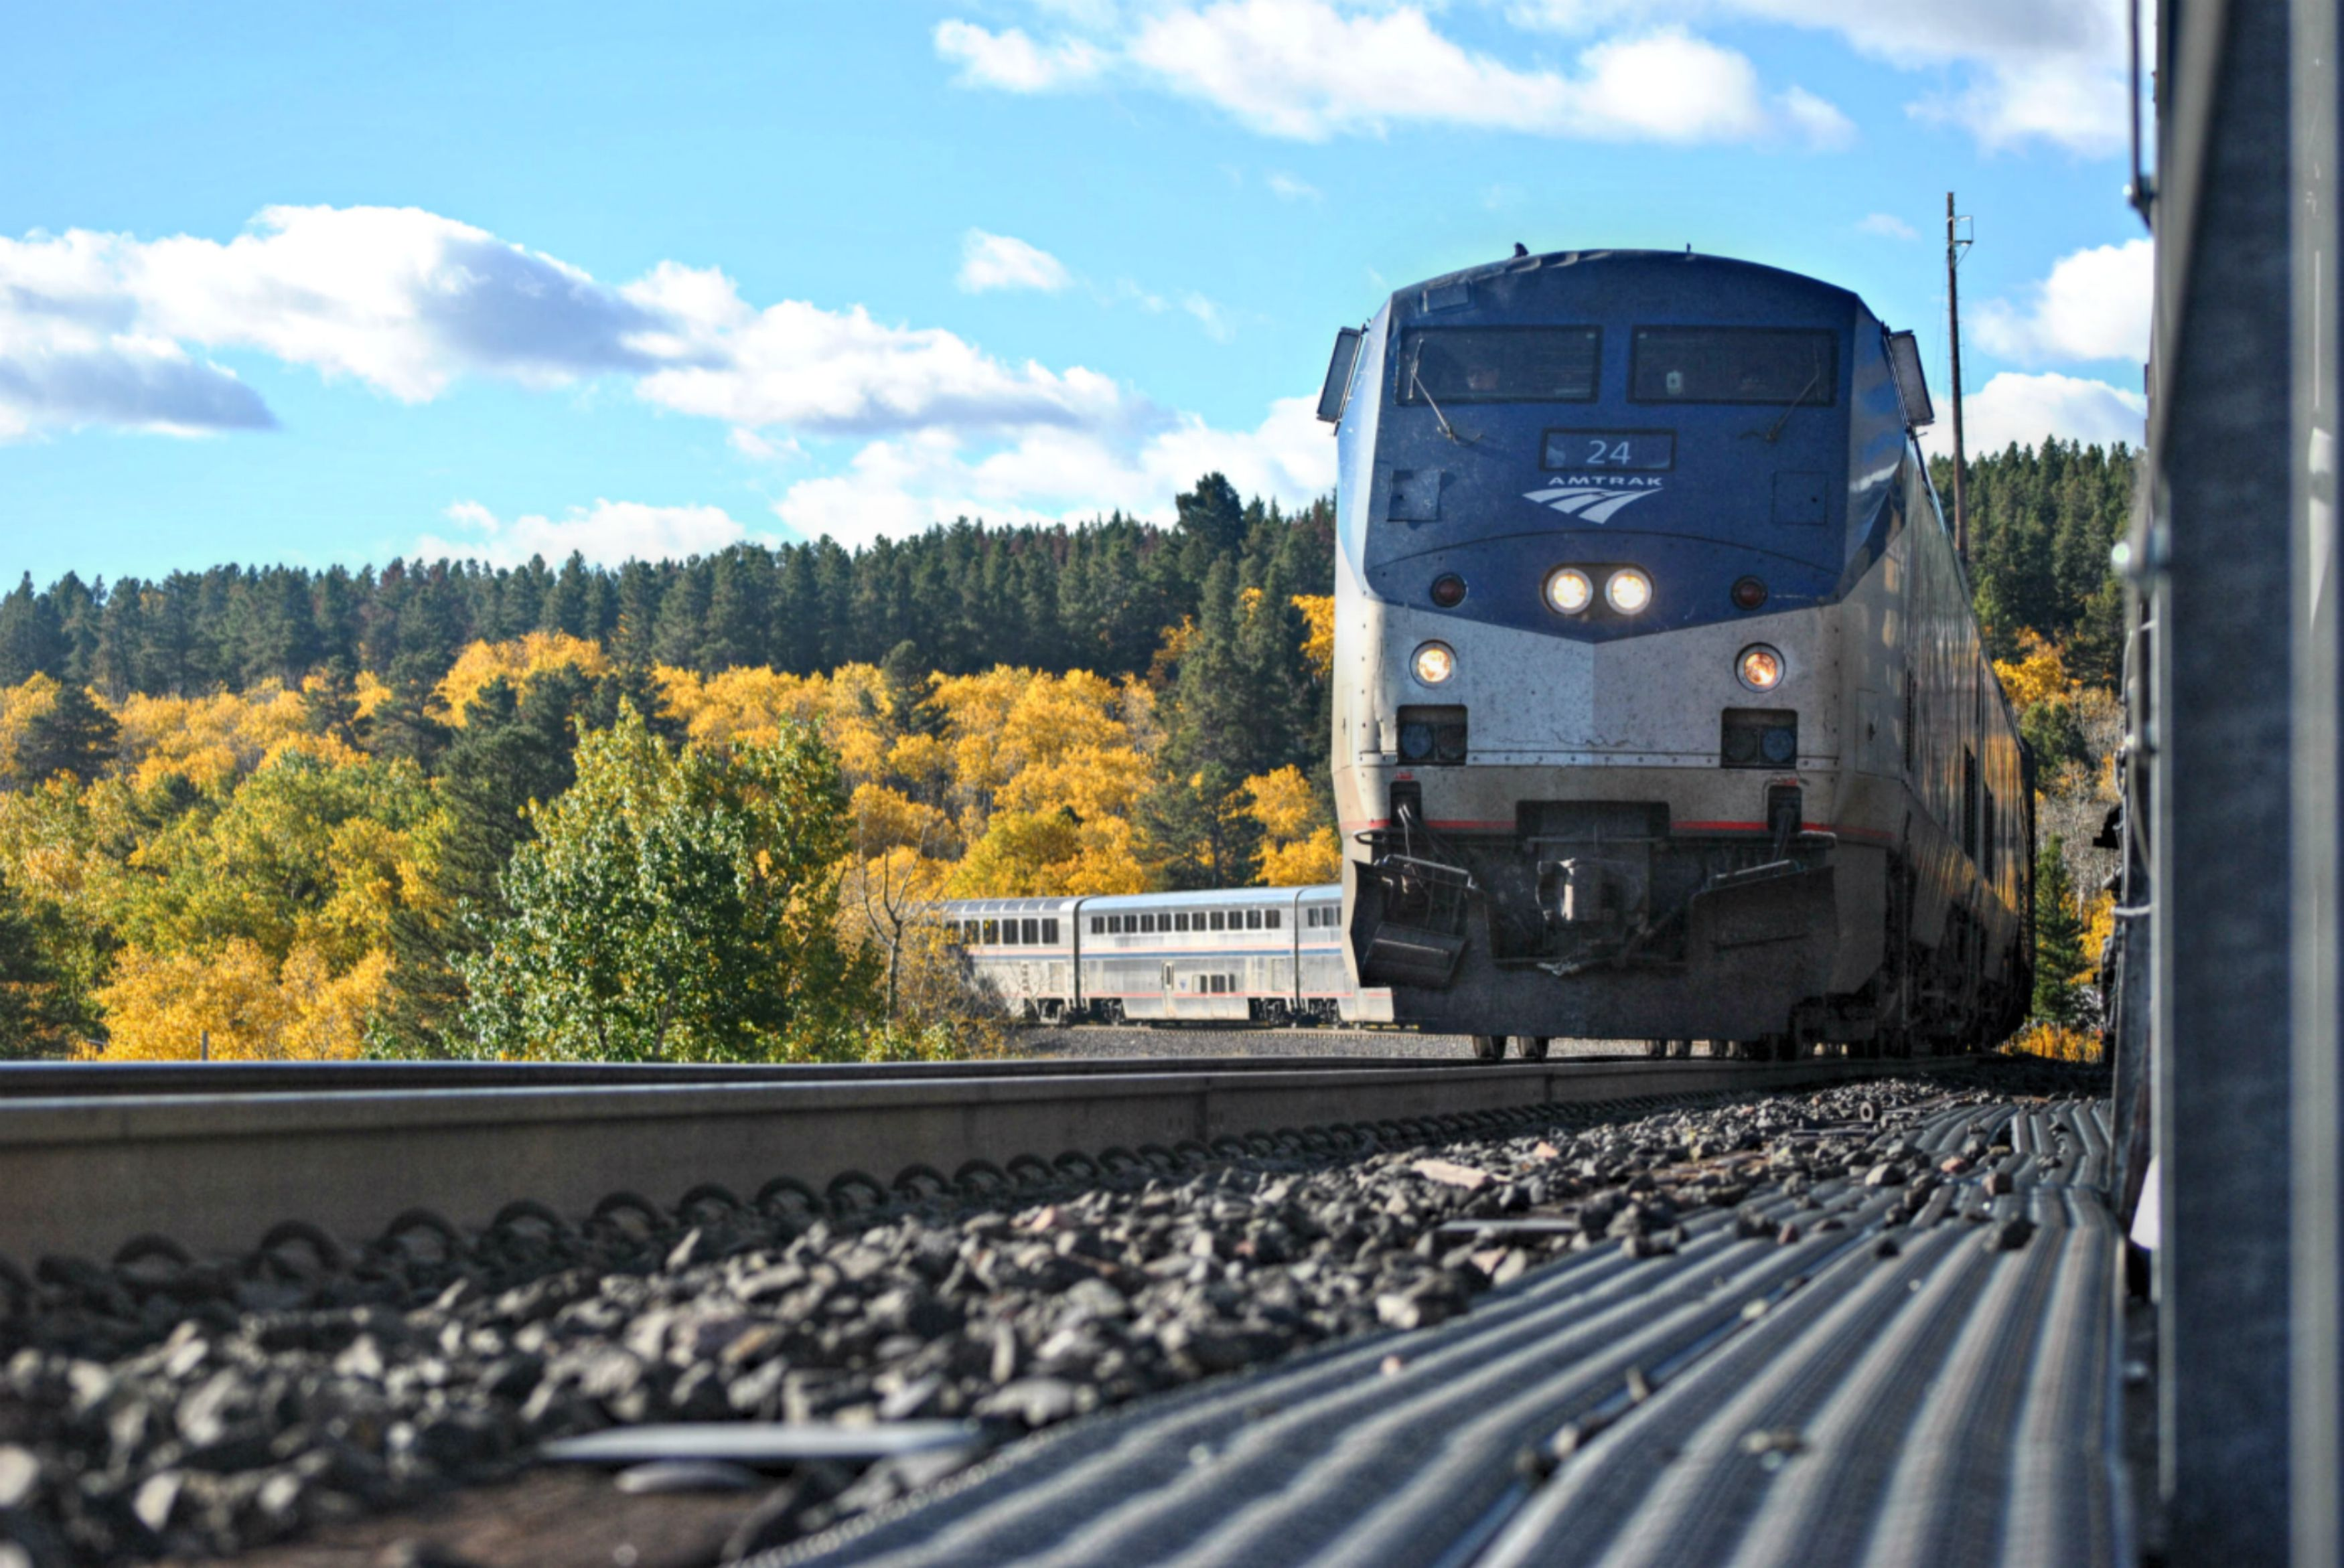 Riding The Empire Builder Train From Chicago To Seattle